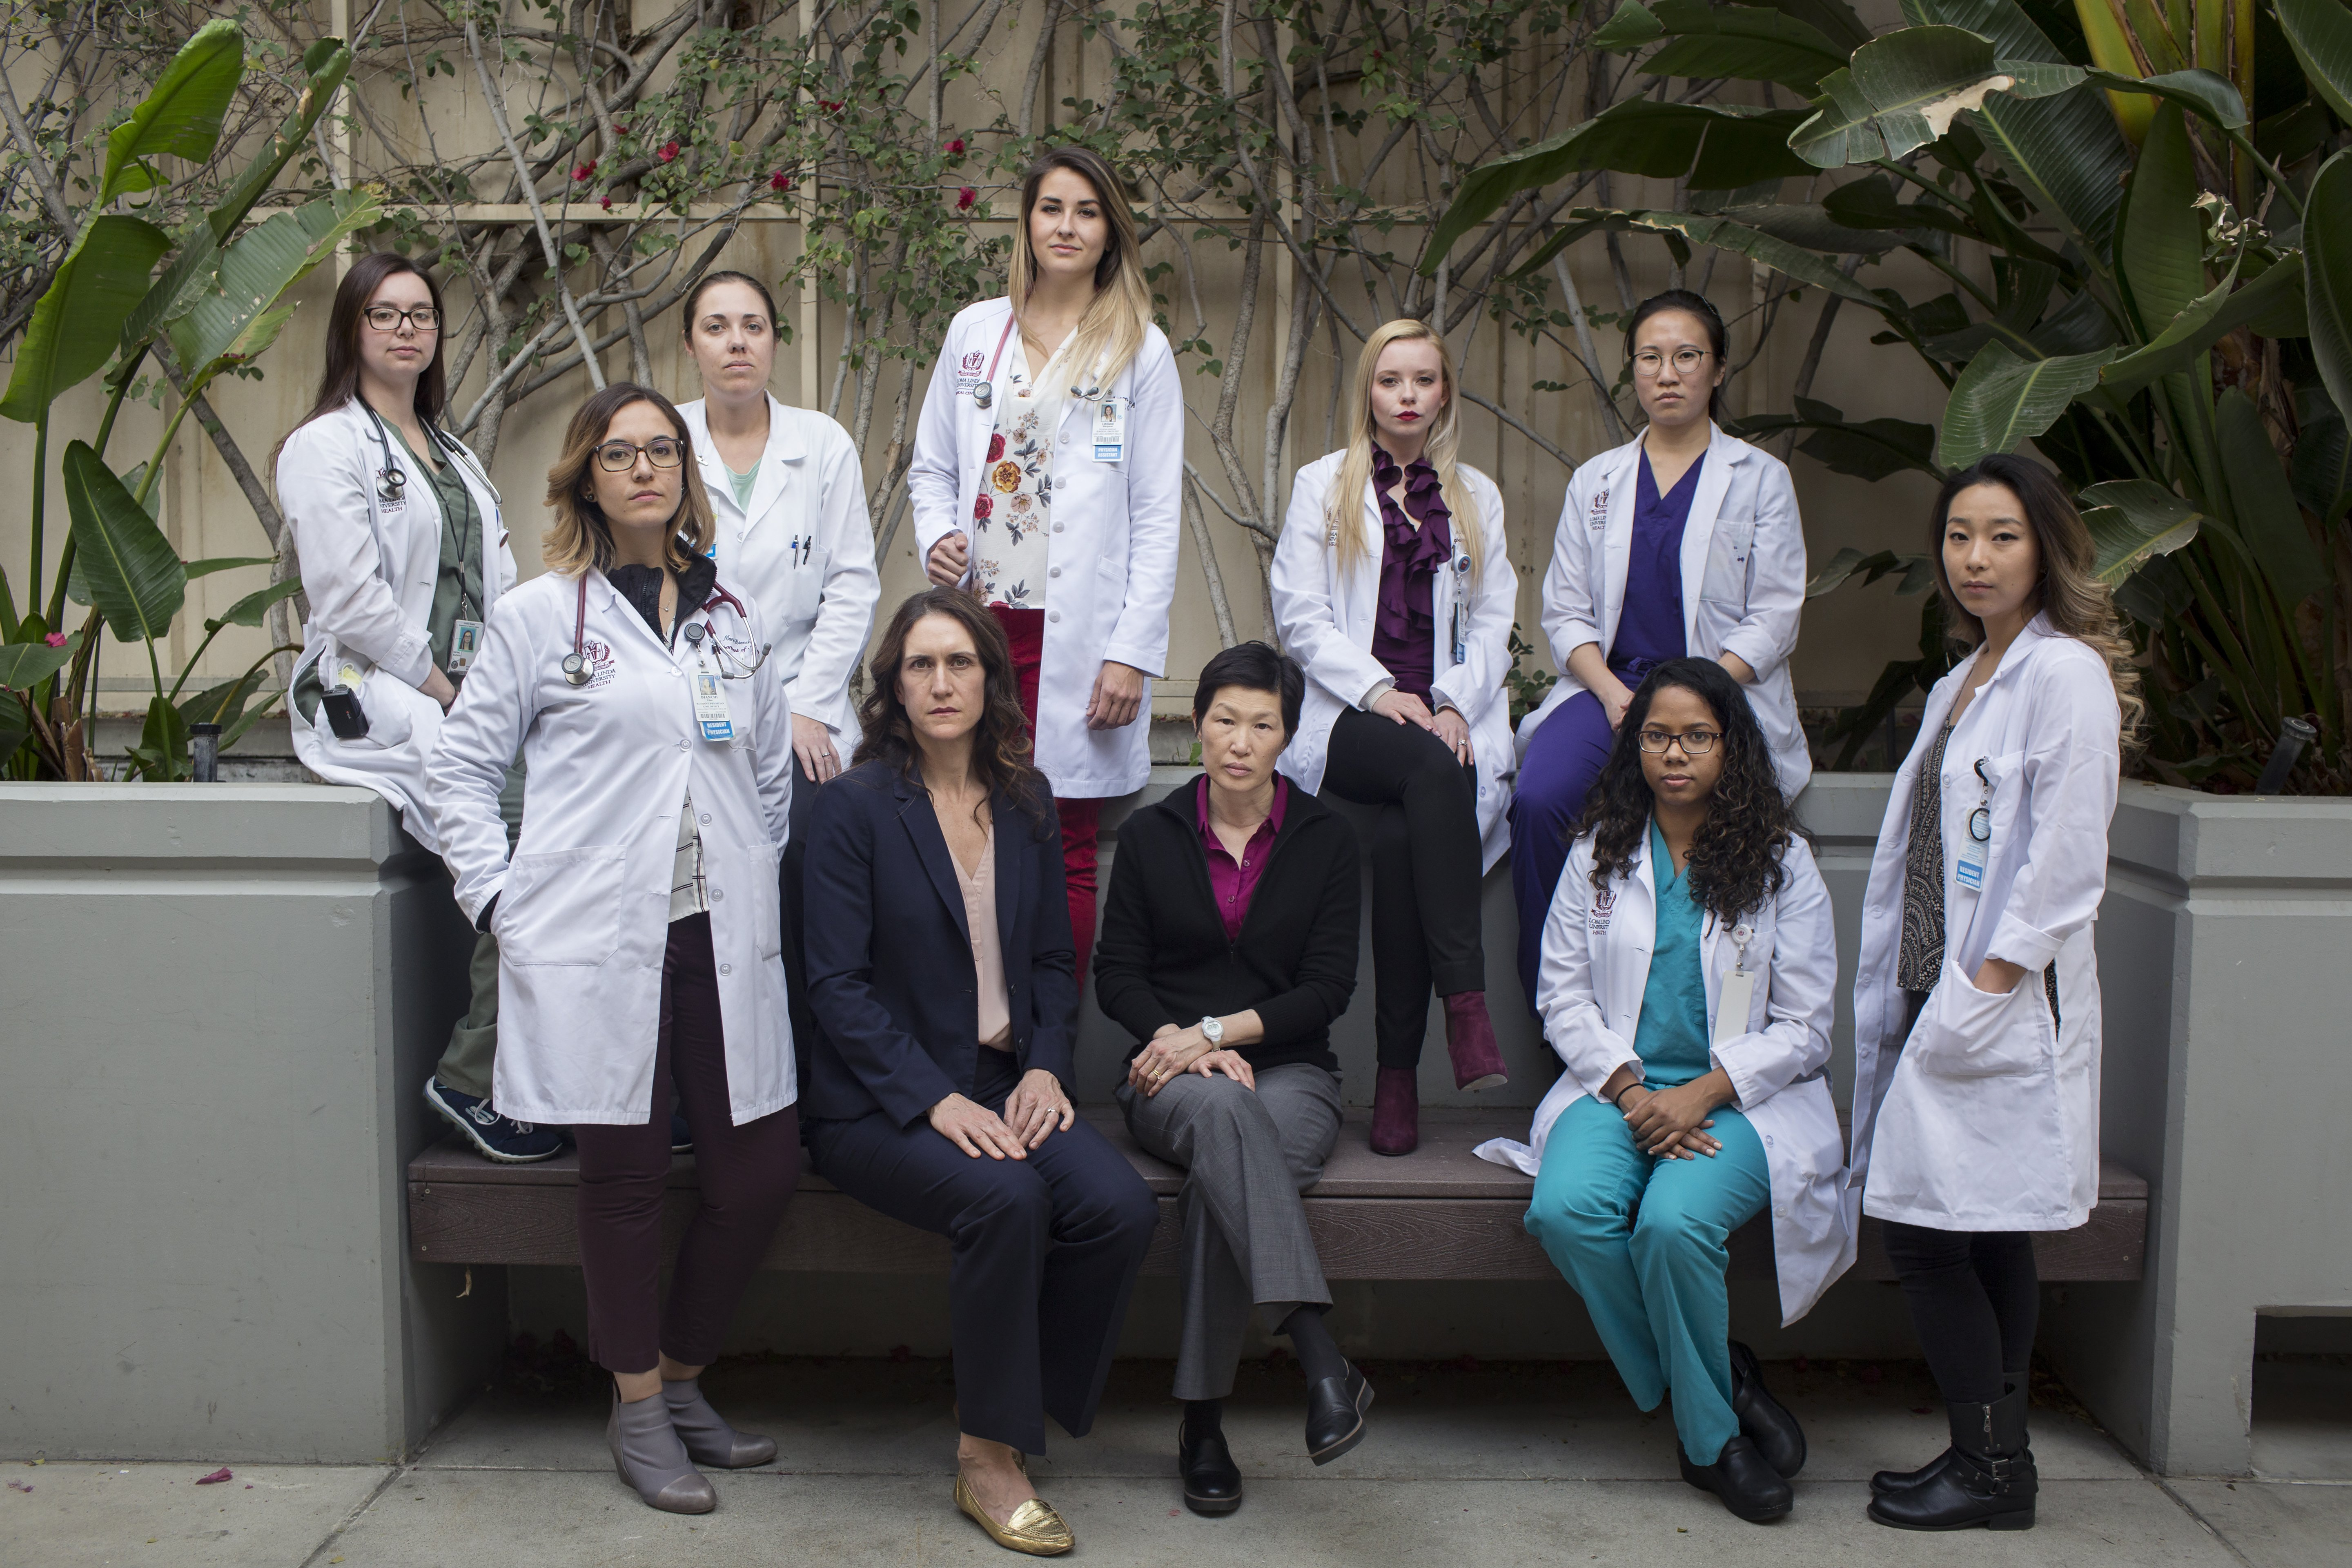 MeToo in medicine: Women, harassed in hospitals and